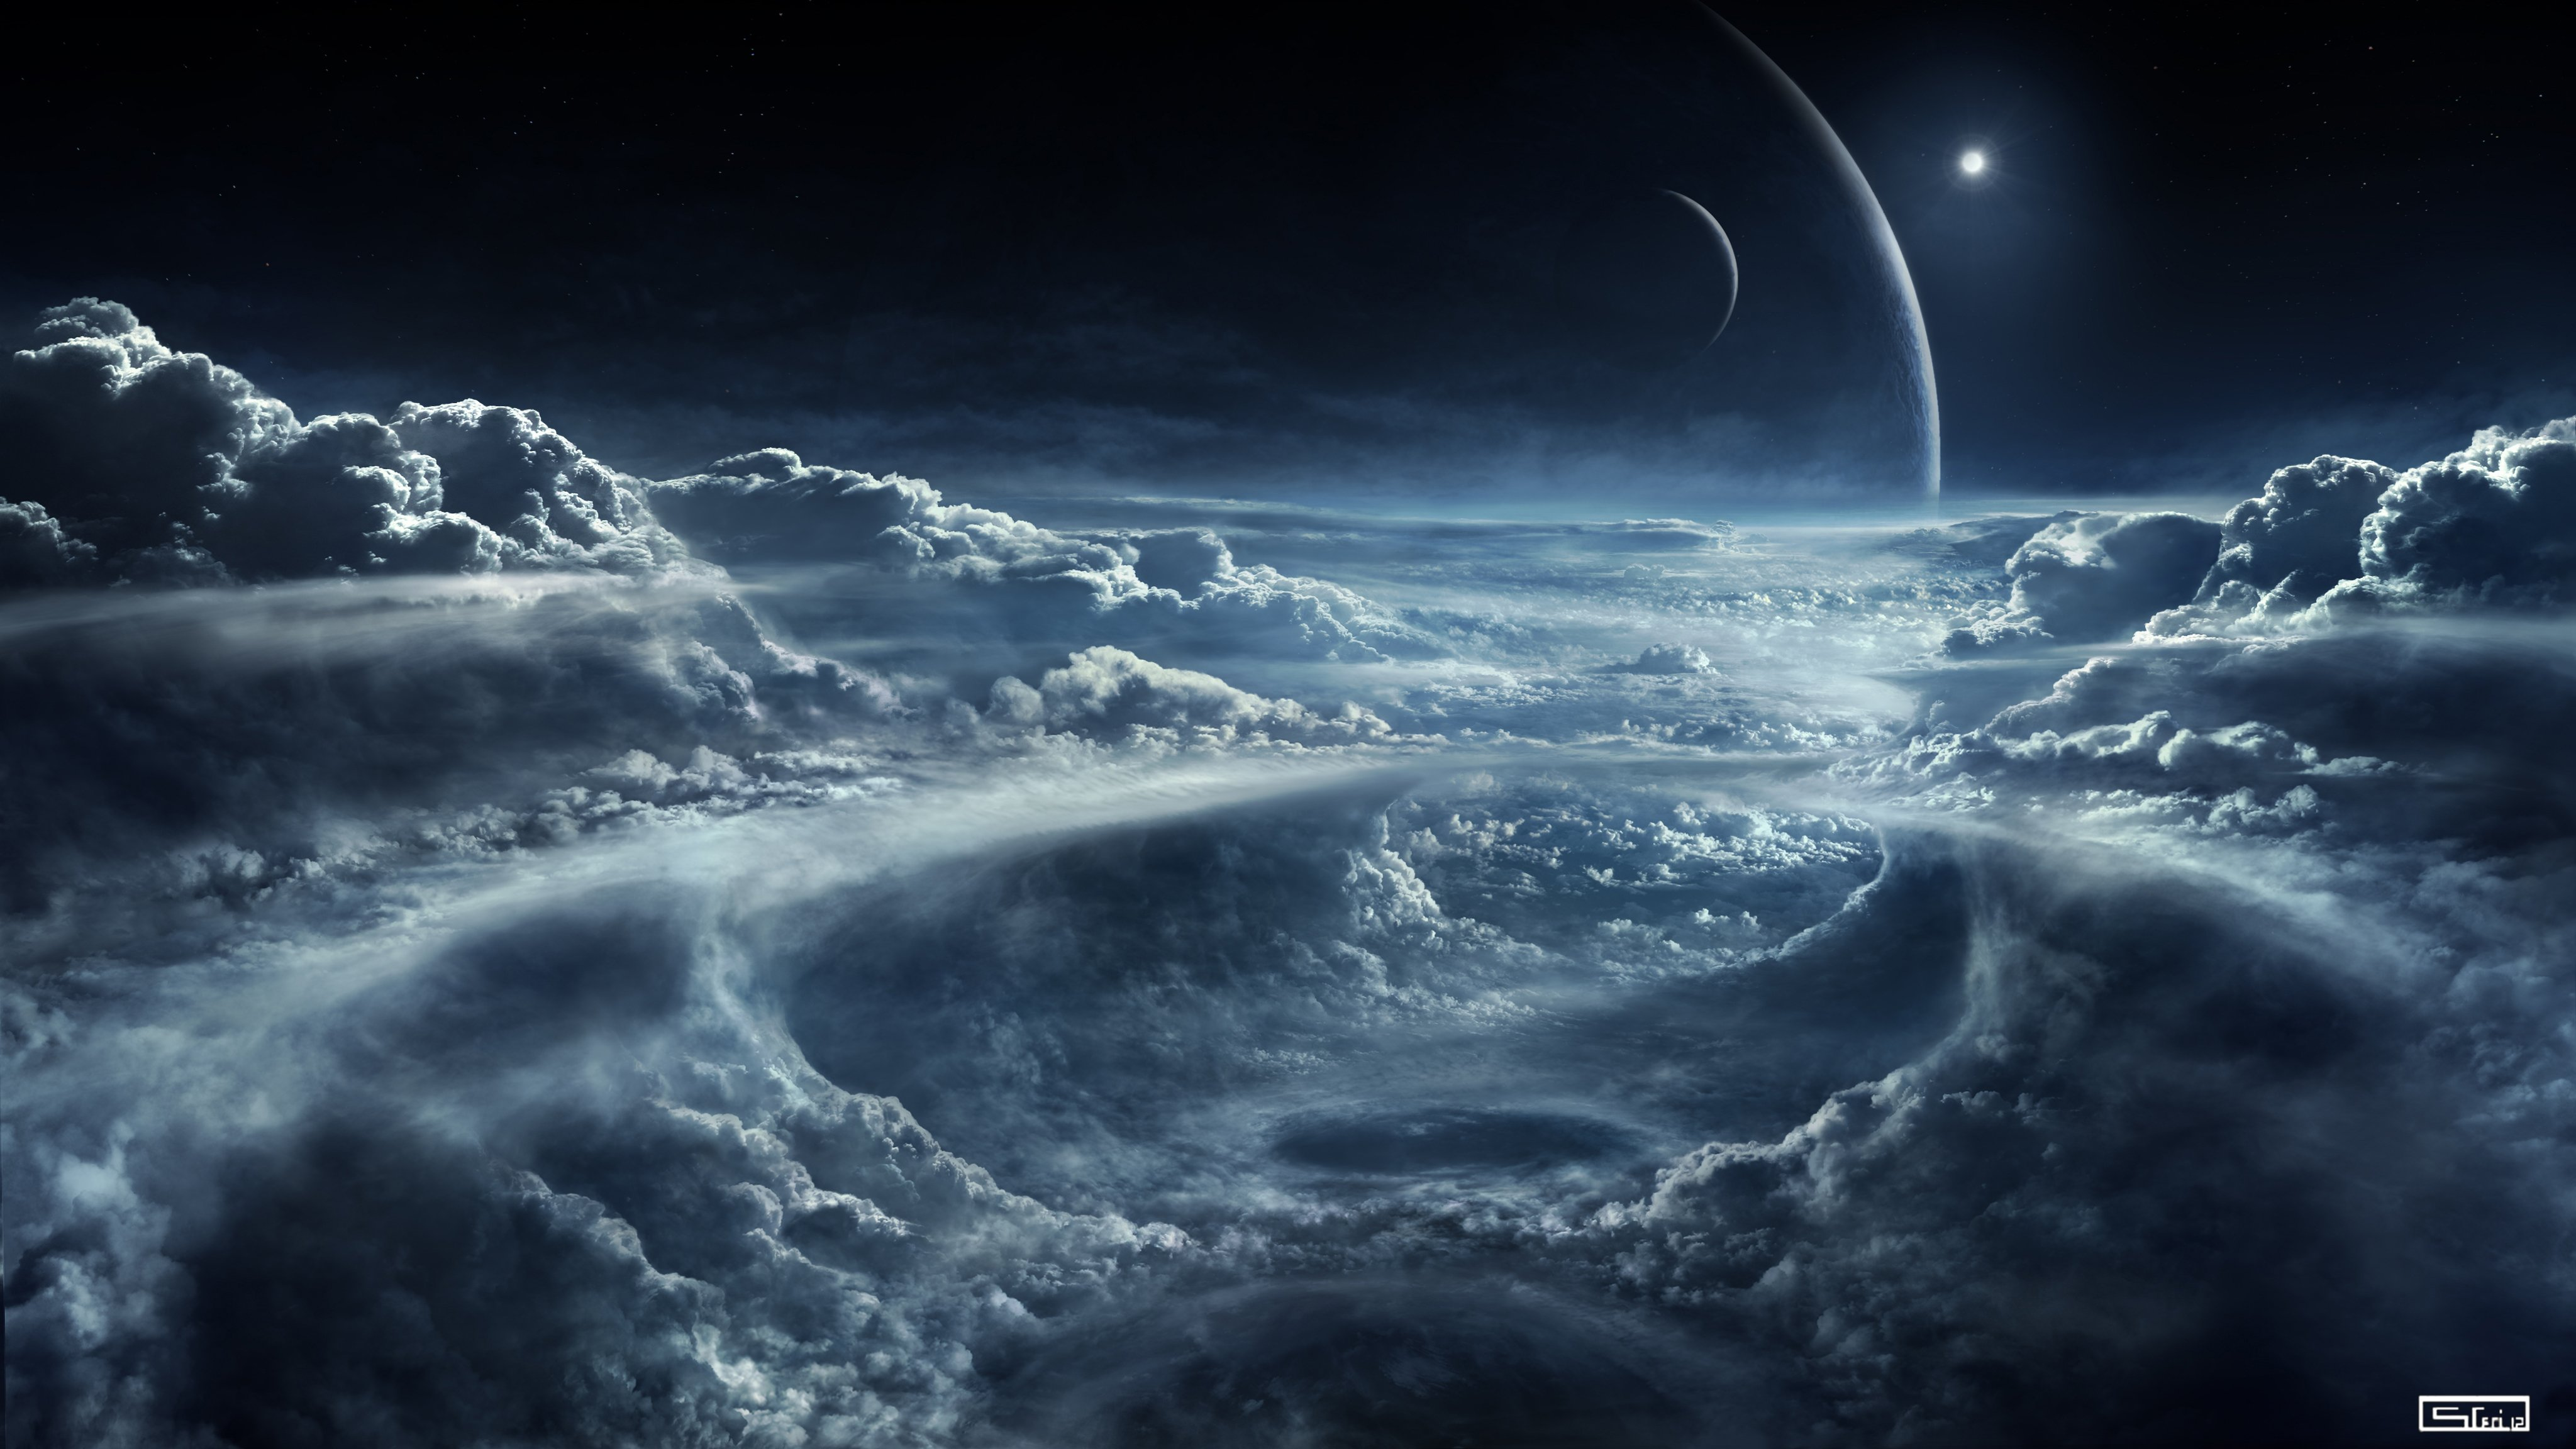 4K Space and Clouds Wallpaper 4K Wallpaper   Ultra HD 4K Wallpapers 4096x2304